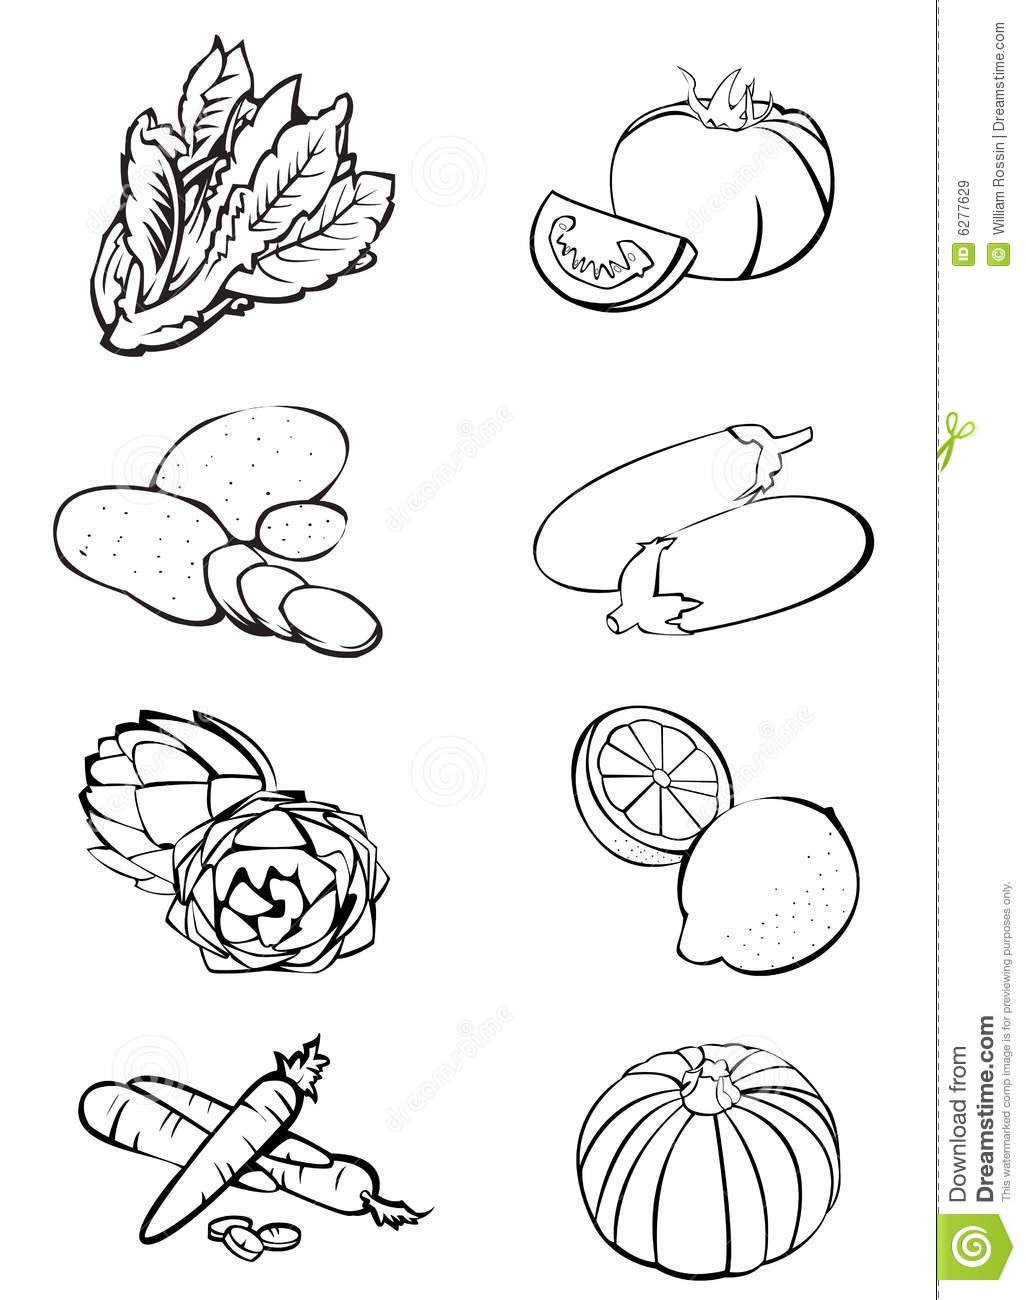 vegetable garden clipart black and white. royaltyfree stock photo download 8 vegetables black u0027n white vegetable garden clipart and